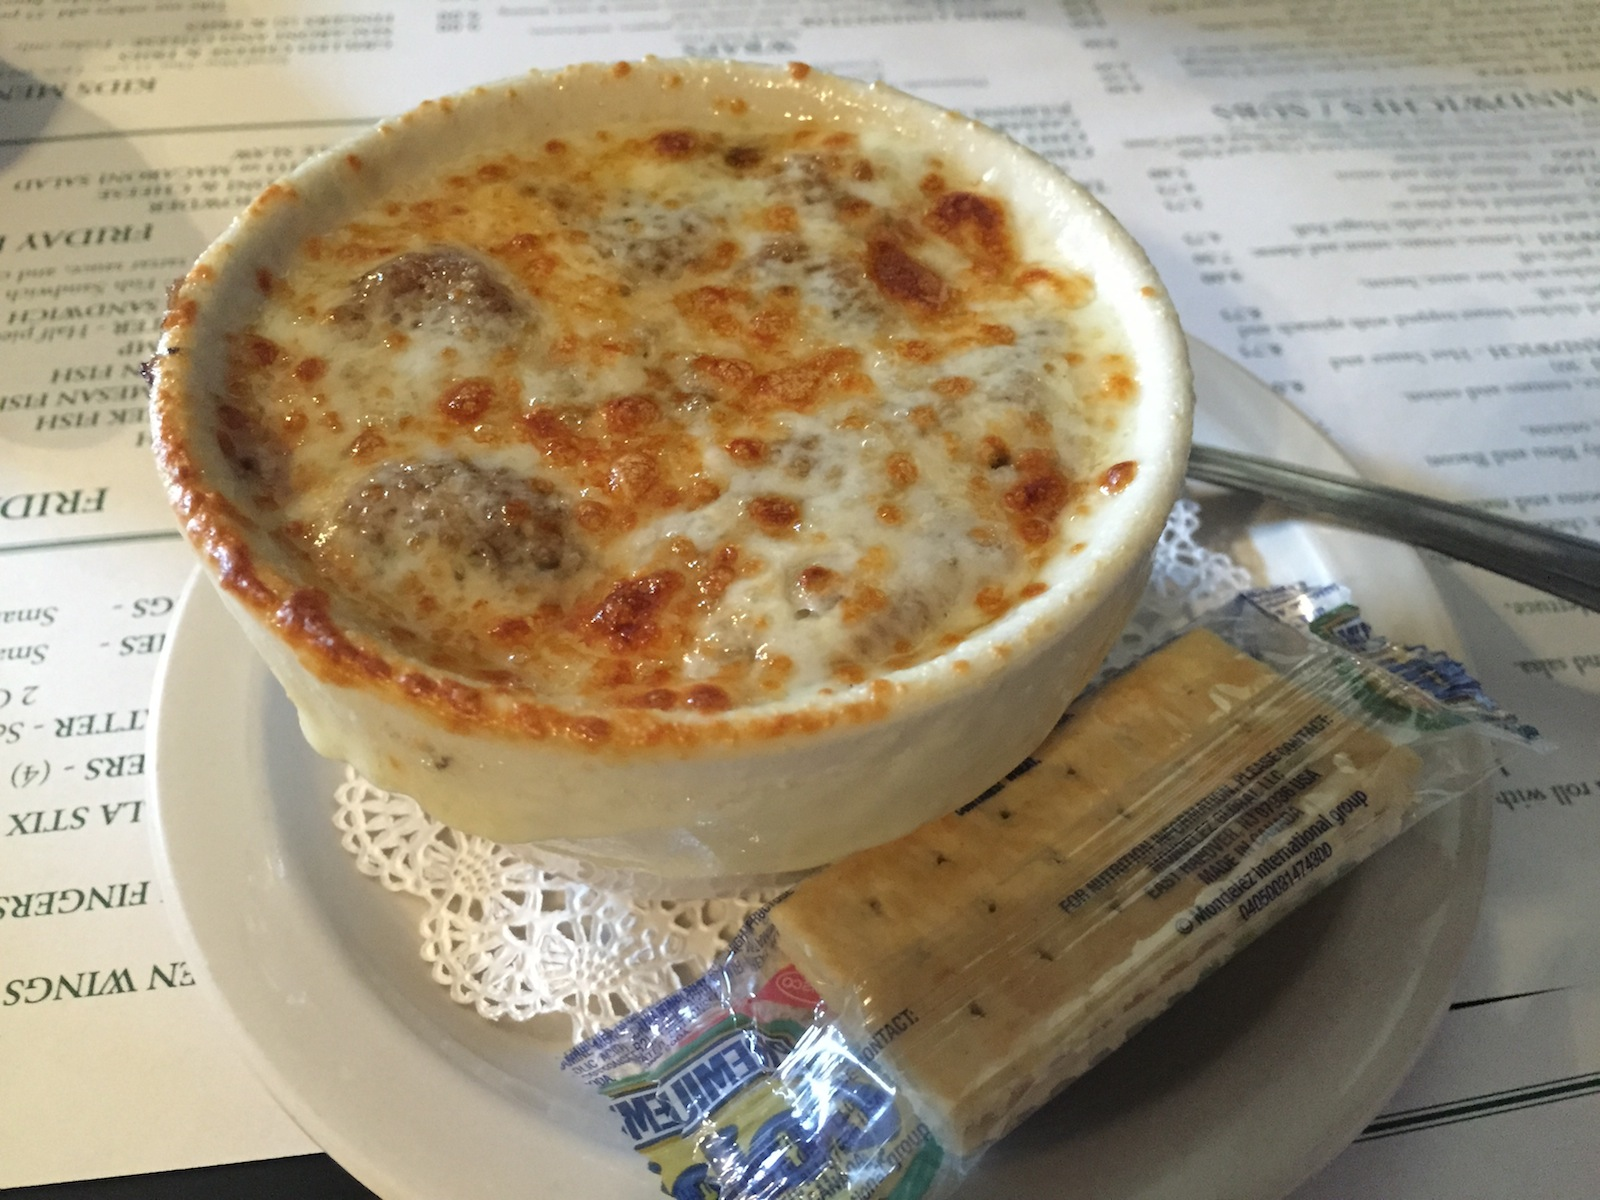 French Onion Soup (Brunner's Tavern)